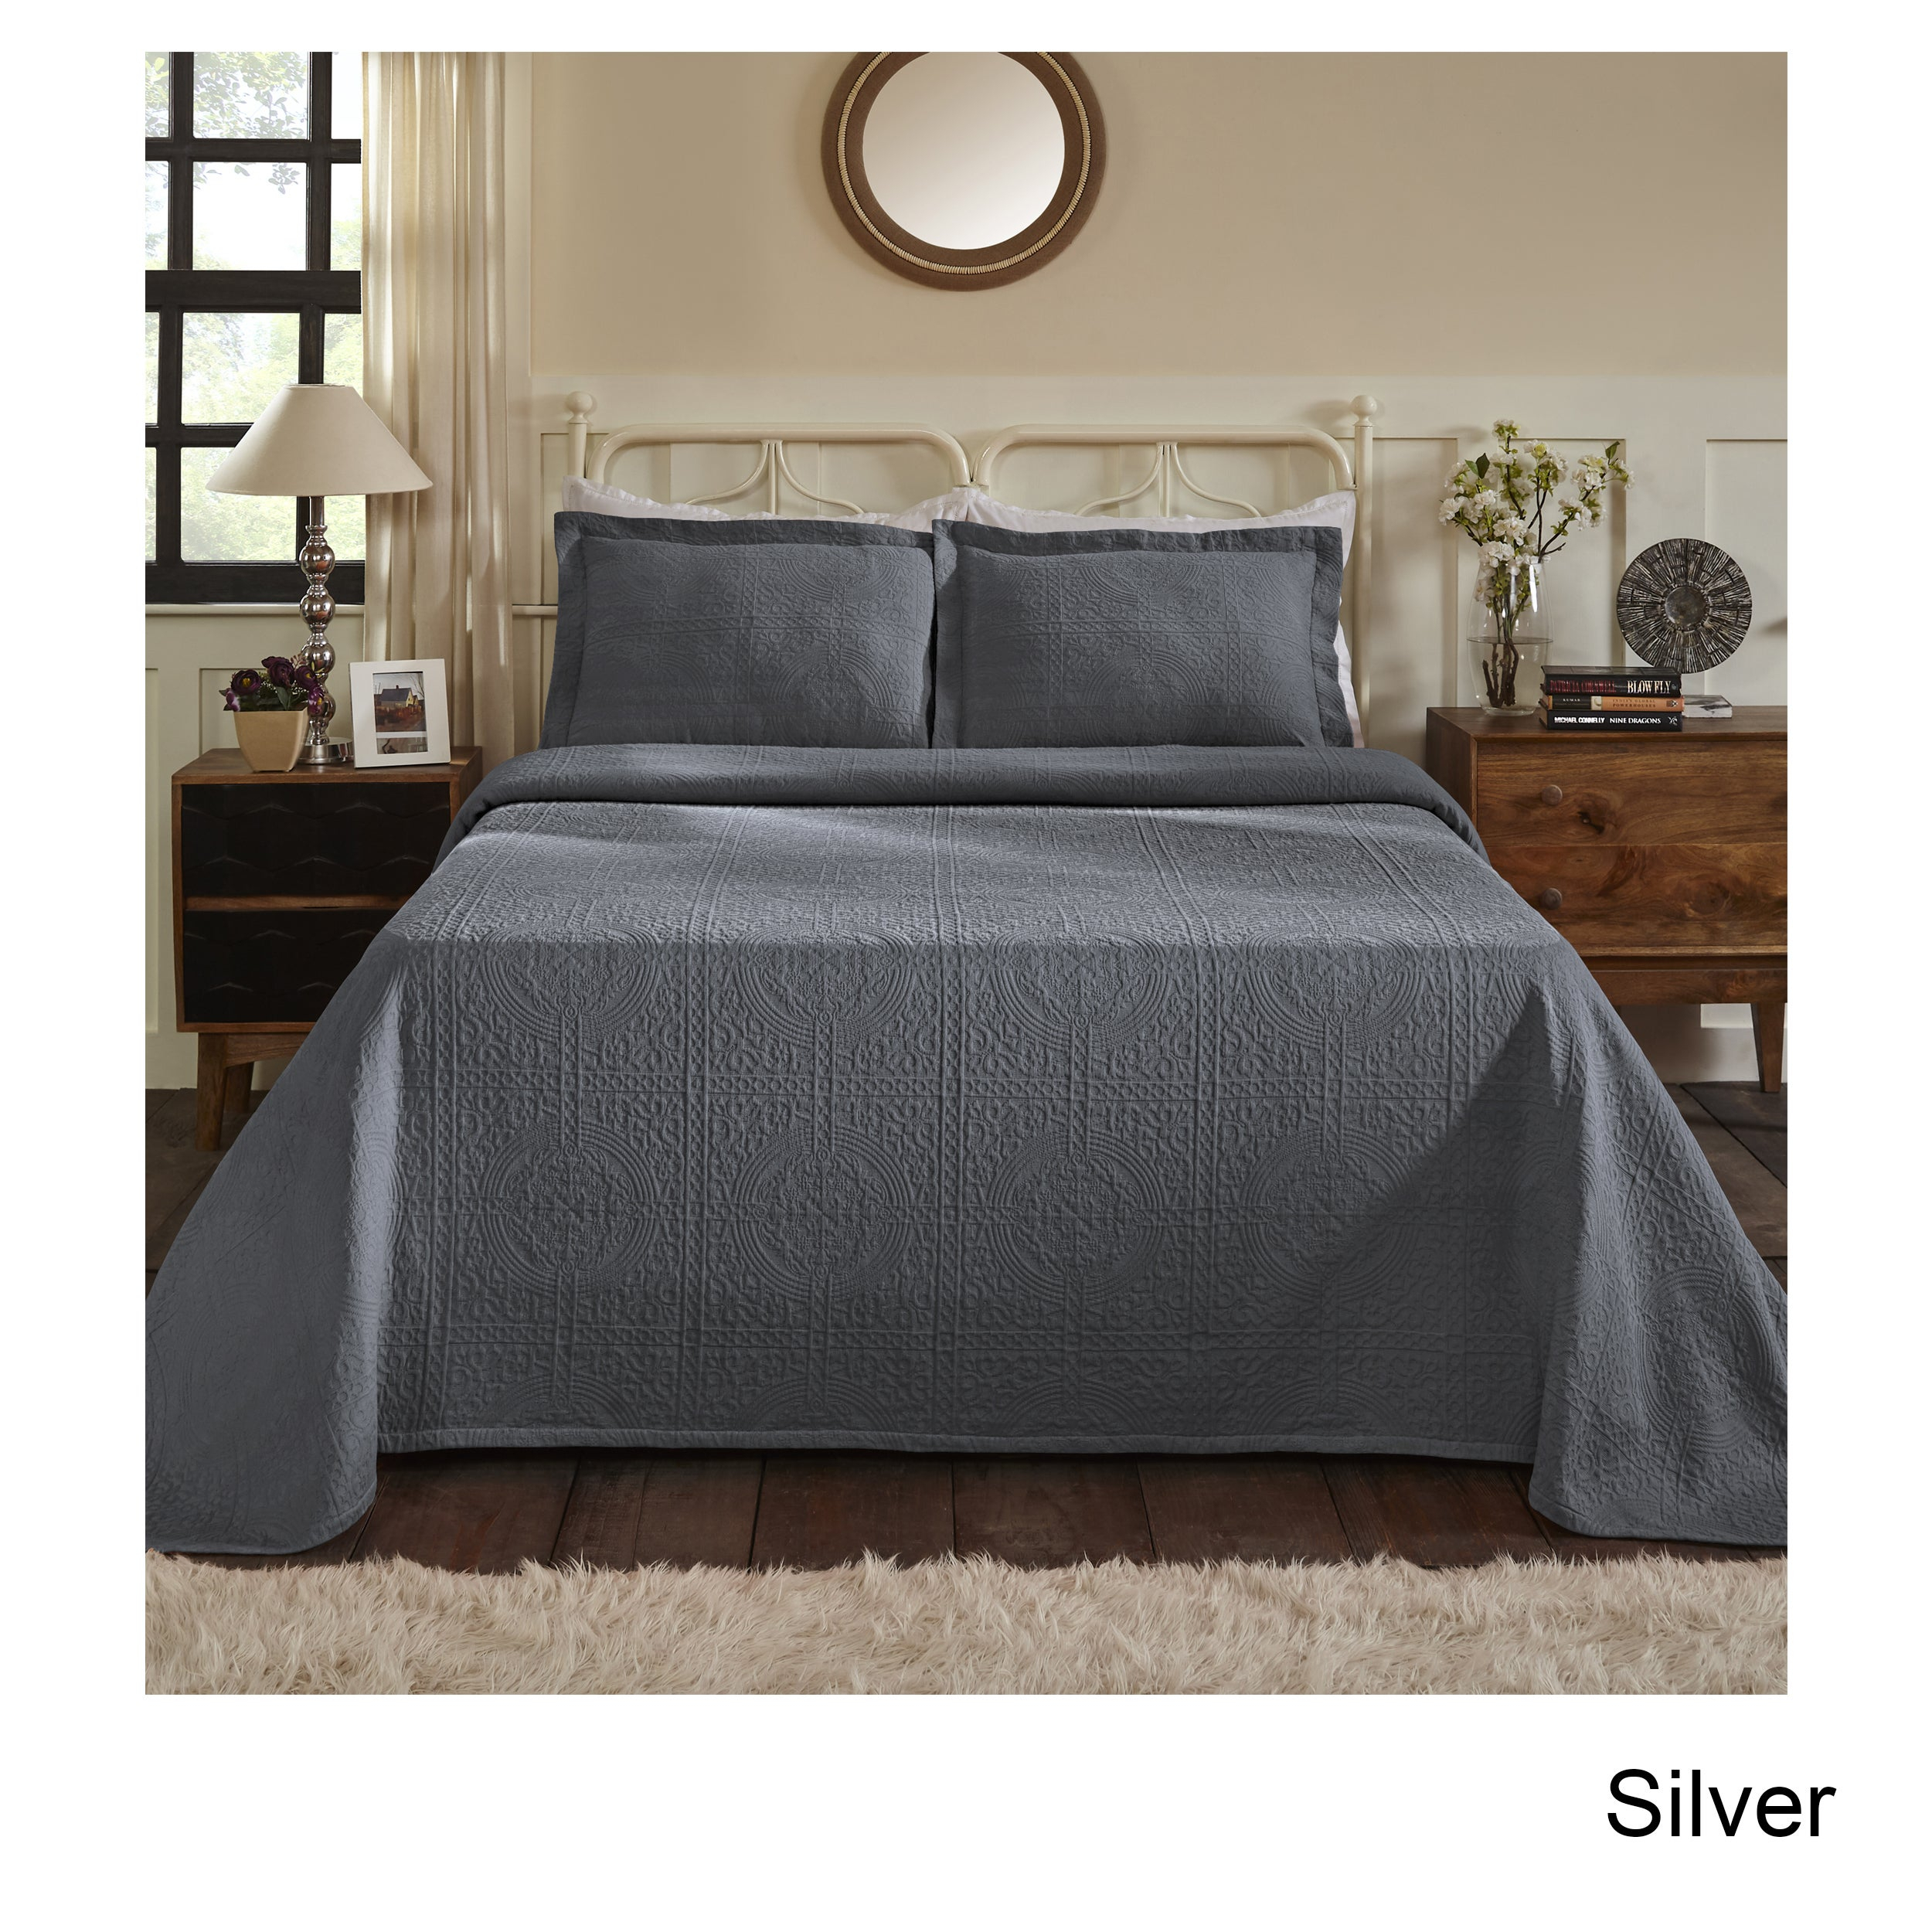 Superior Jacquard Matelasse Fleur De Lis Bedspread Set In 2 Piece Metal Wall Decor Sets By Fleur De Lis Living (View 13 of 30)